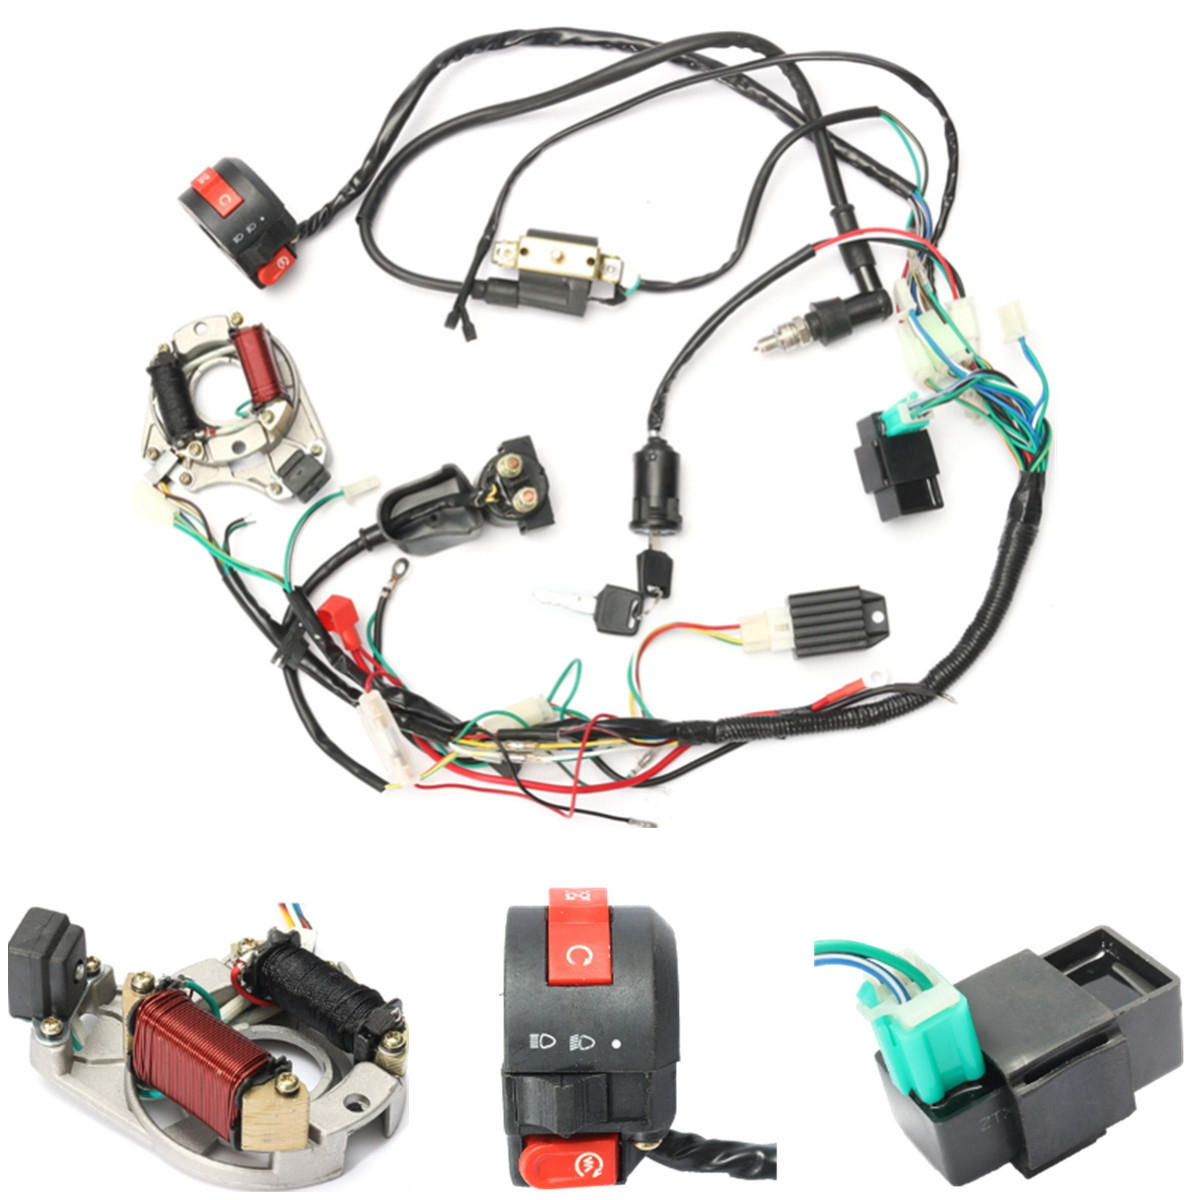 hight resolution of 50cc 70cc 90cc 110cc cdi wire harness assembly wiring kit atv yamaha wiring harness sunl atv wiring harness 4 wire